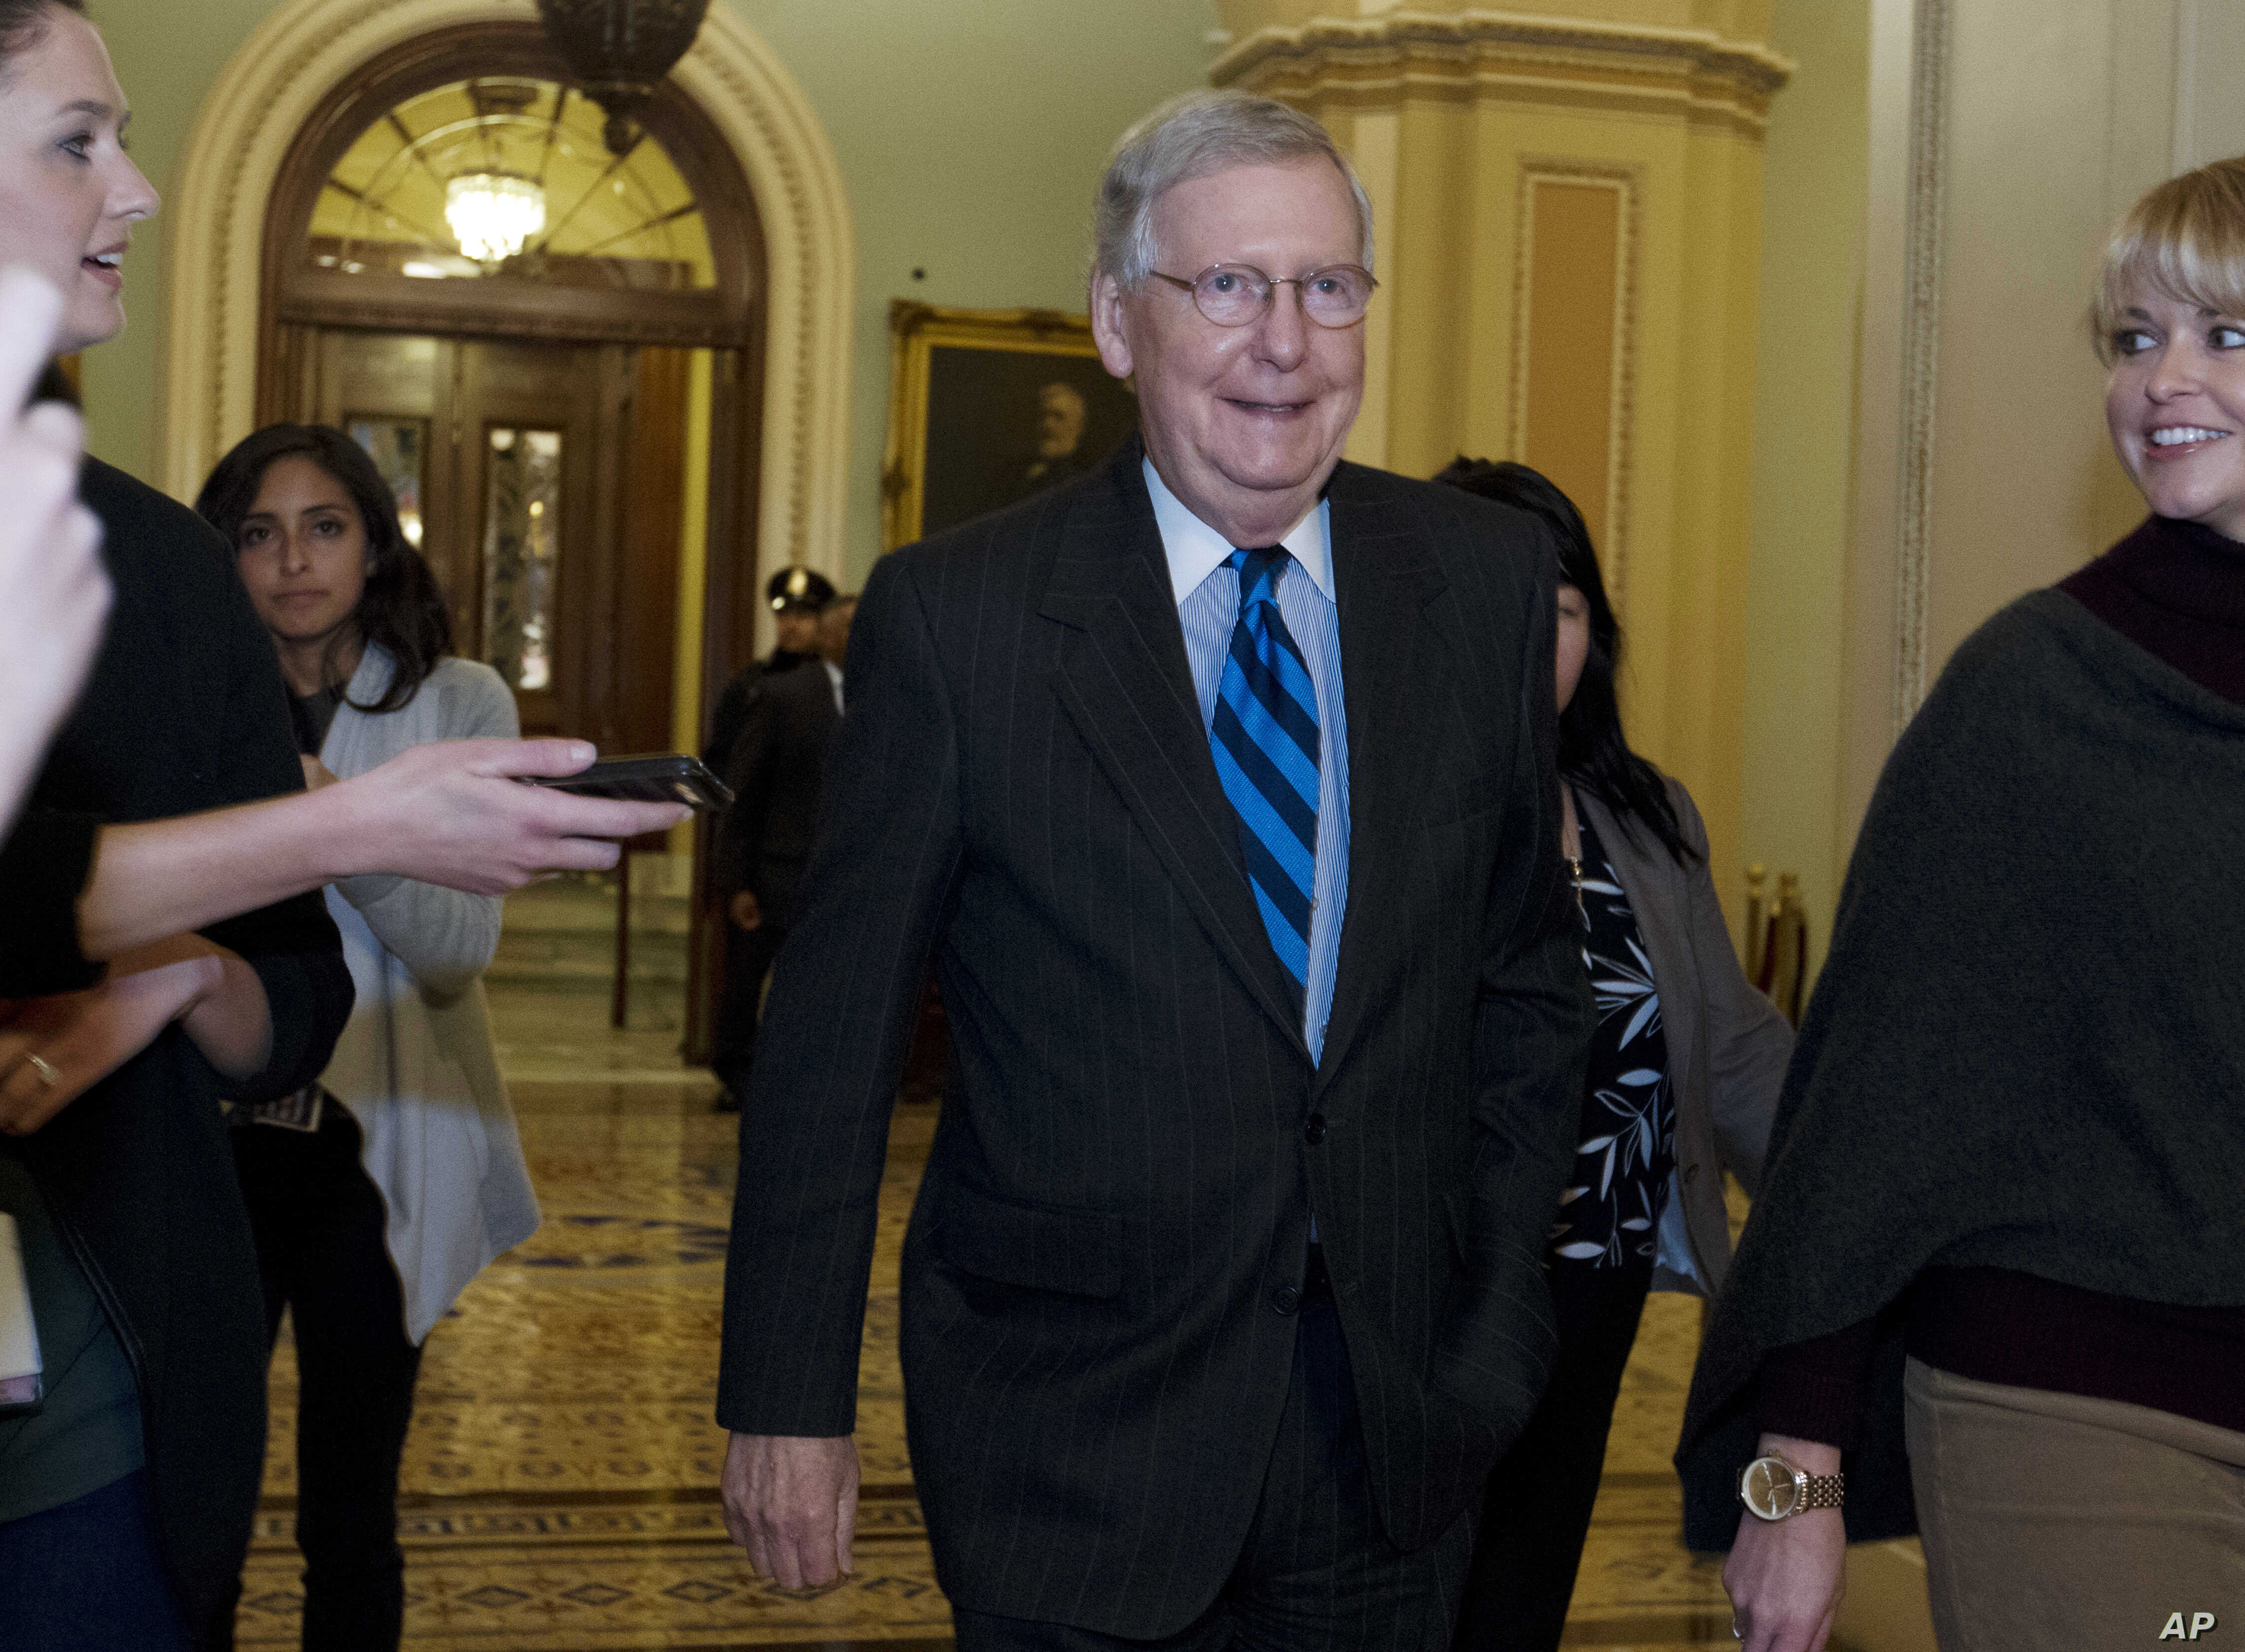 Senate Majority Leader Mitch McConnell, R-Ky., listens to questions from reporters as he walks to his office after speaking on the Senate floor at the Capitol, Sunday, Jan. 21, 2018, in Washington.